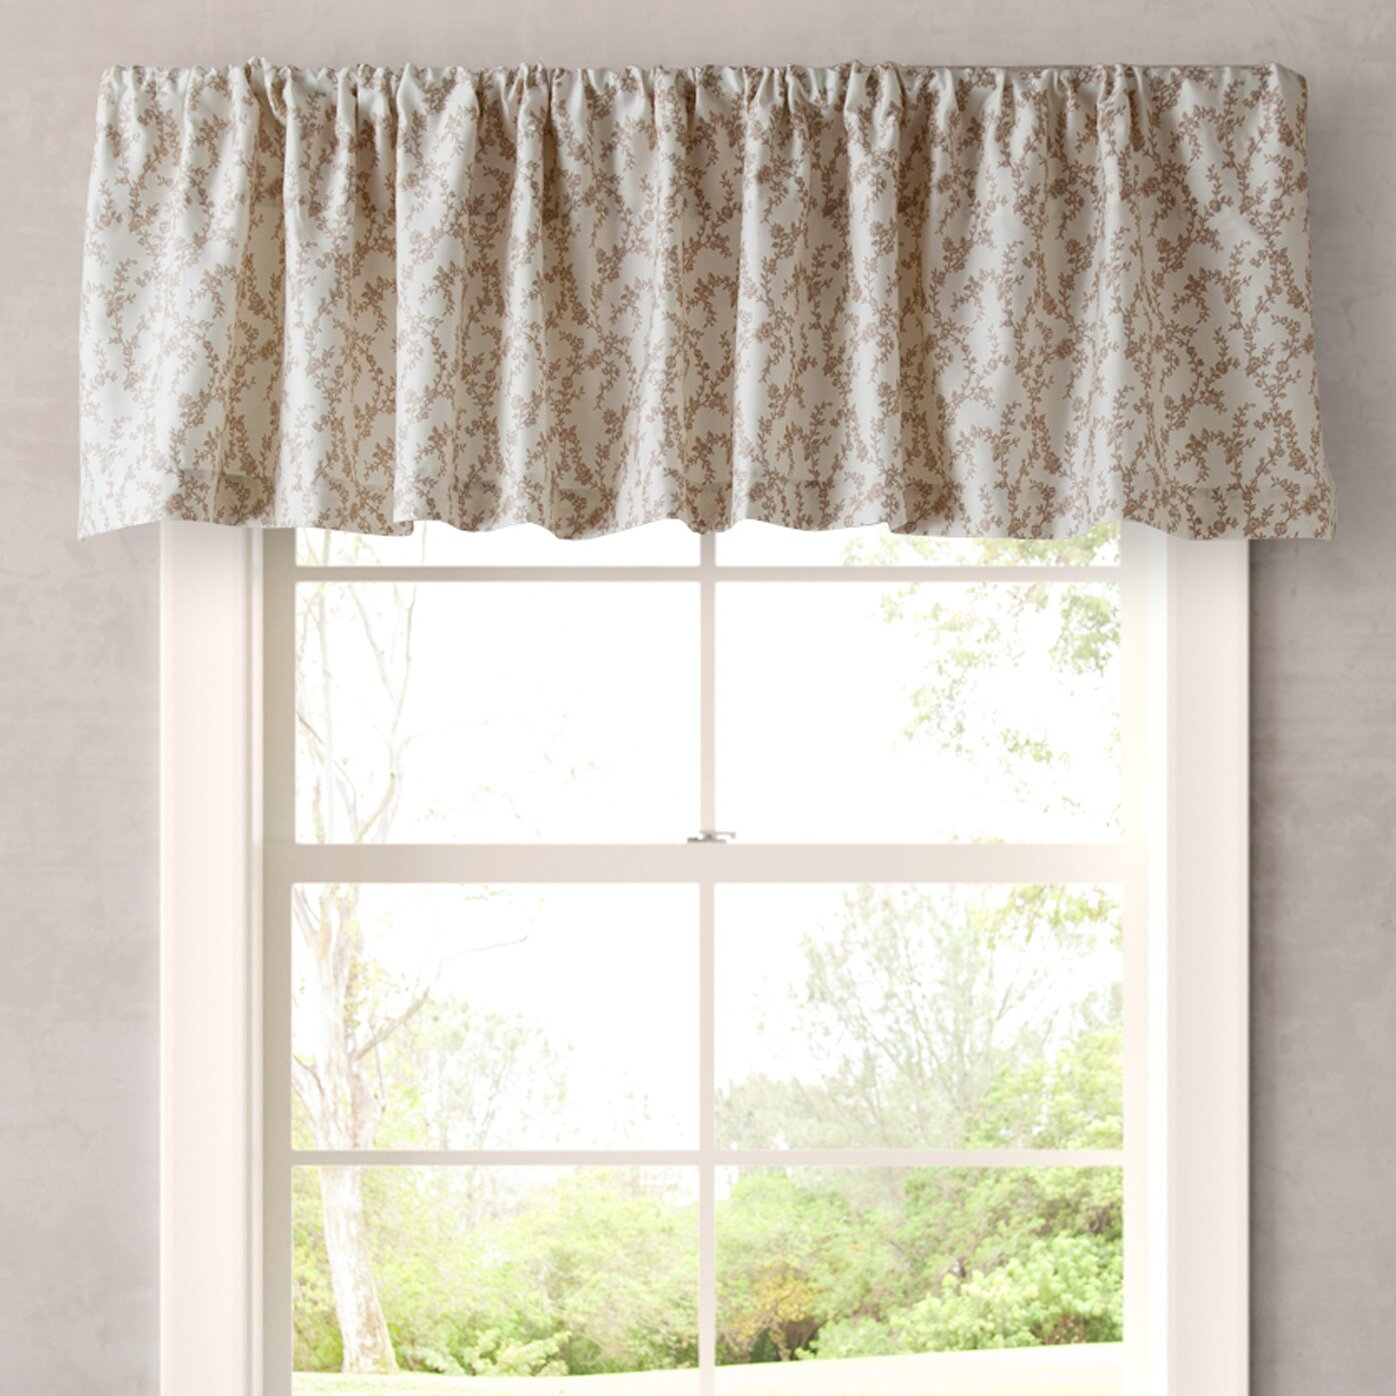 laura ashley home victoria 86 curtain valance reviews. Black Bedroom Furniture Sets. Home Design Ideas